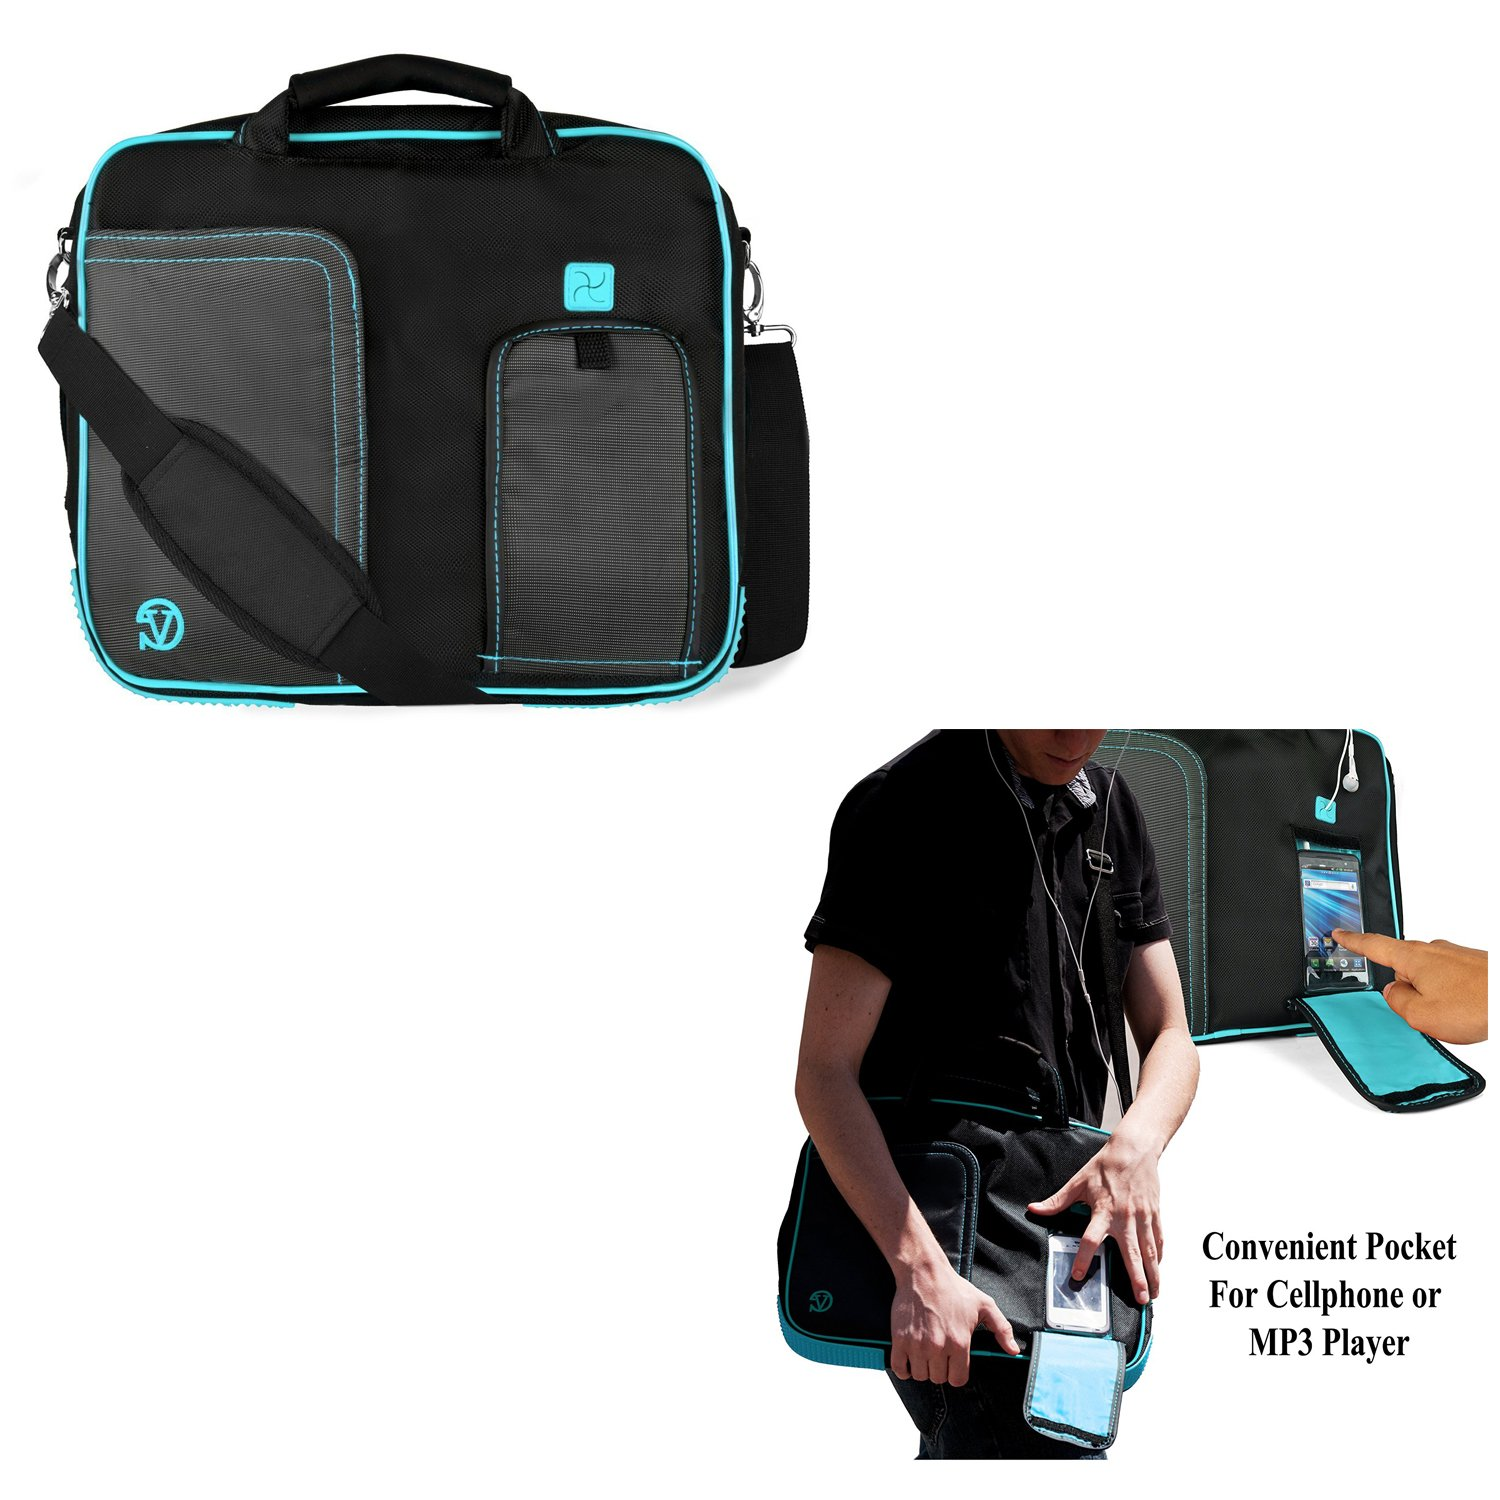 Universal Laptop Bag Messenger Bag Tablet Sleeve Pouch Briefcase 10.1'' to 12'' for Acer Aspire/Chromebook/One 10/Apple MacBook 12/Asus Transformer Book Flip/ZenBook 3/E (Black/Aqua)